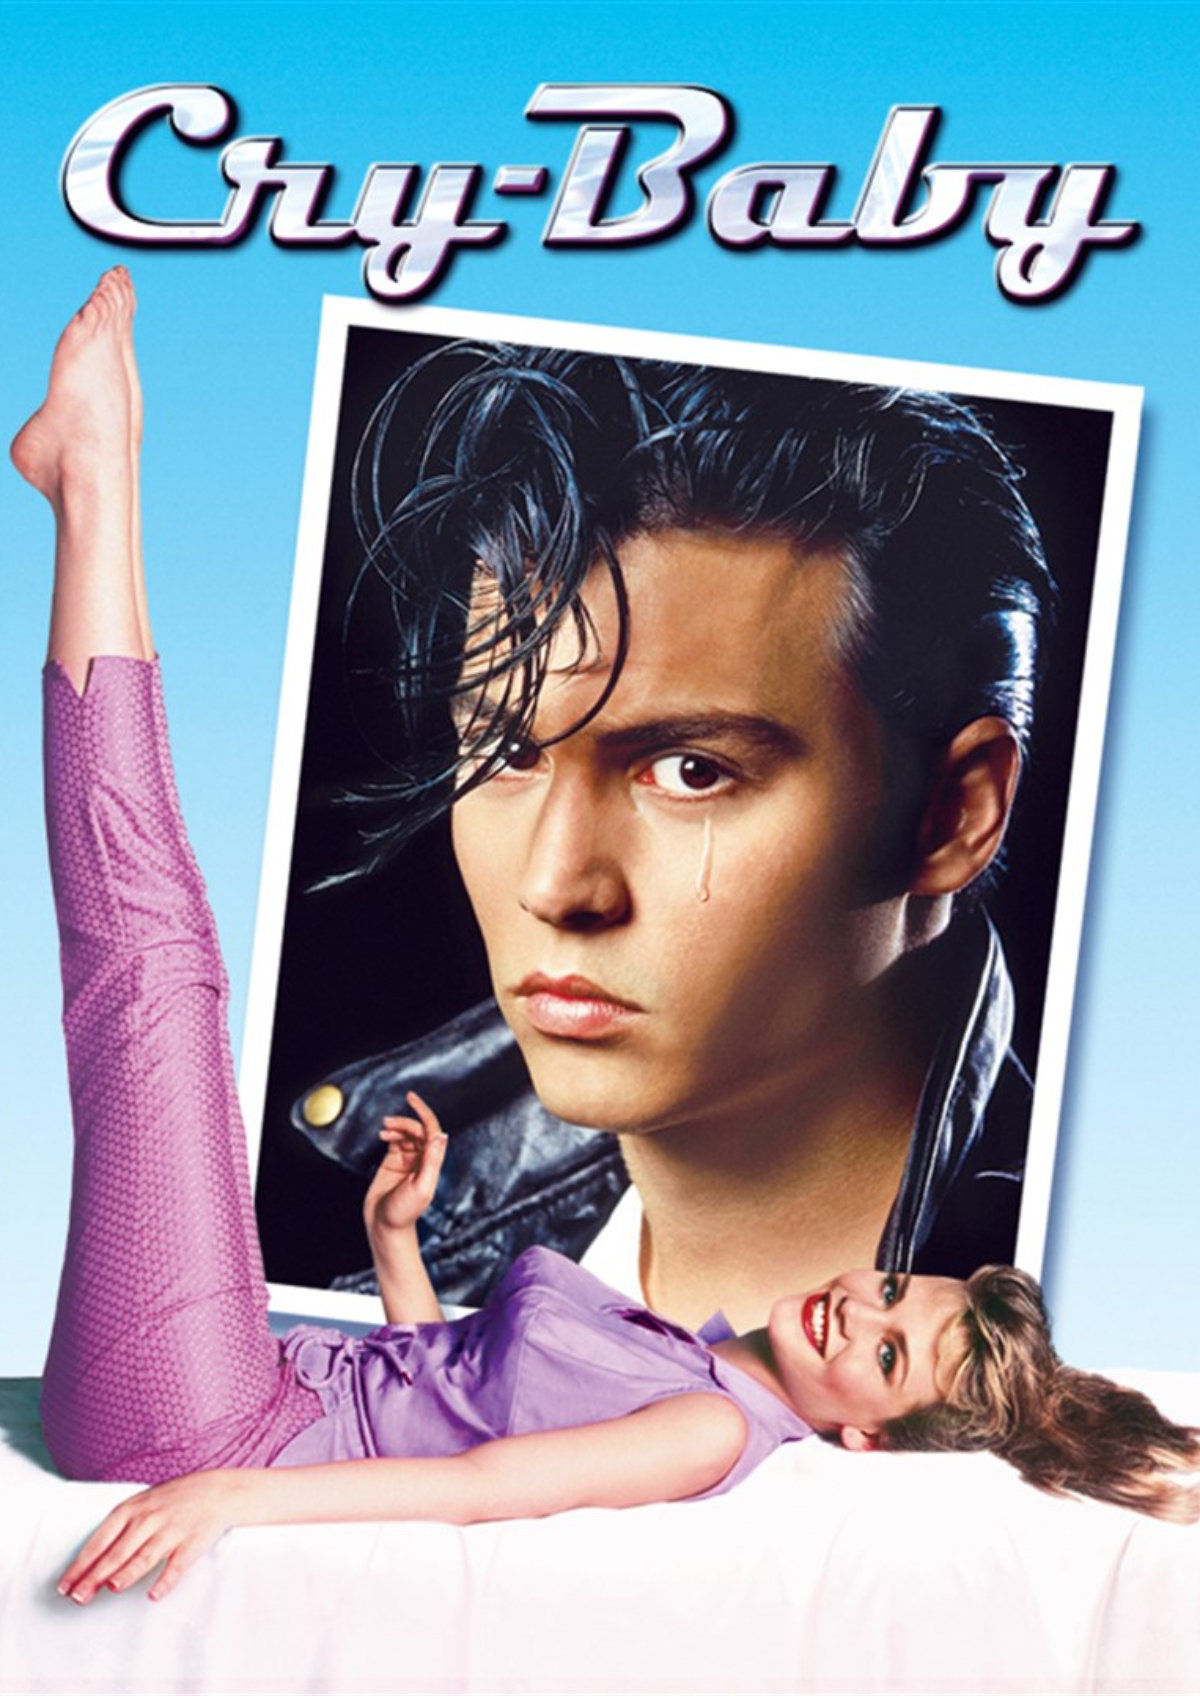 'Cry-Baby' movie poster